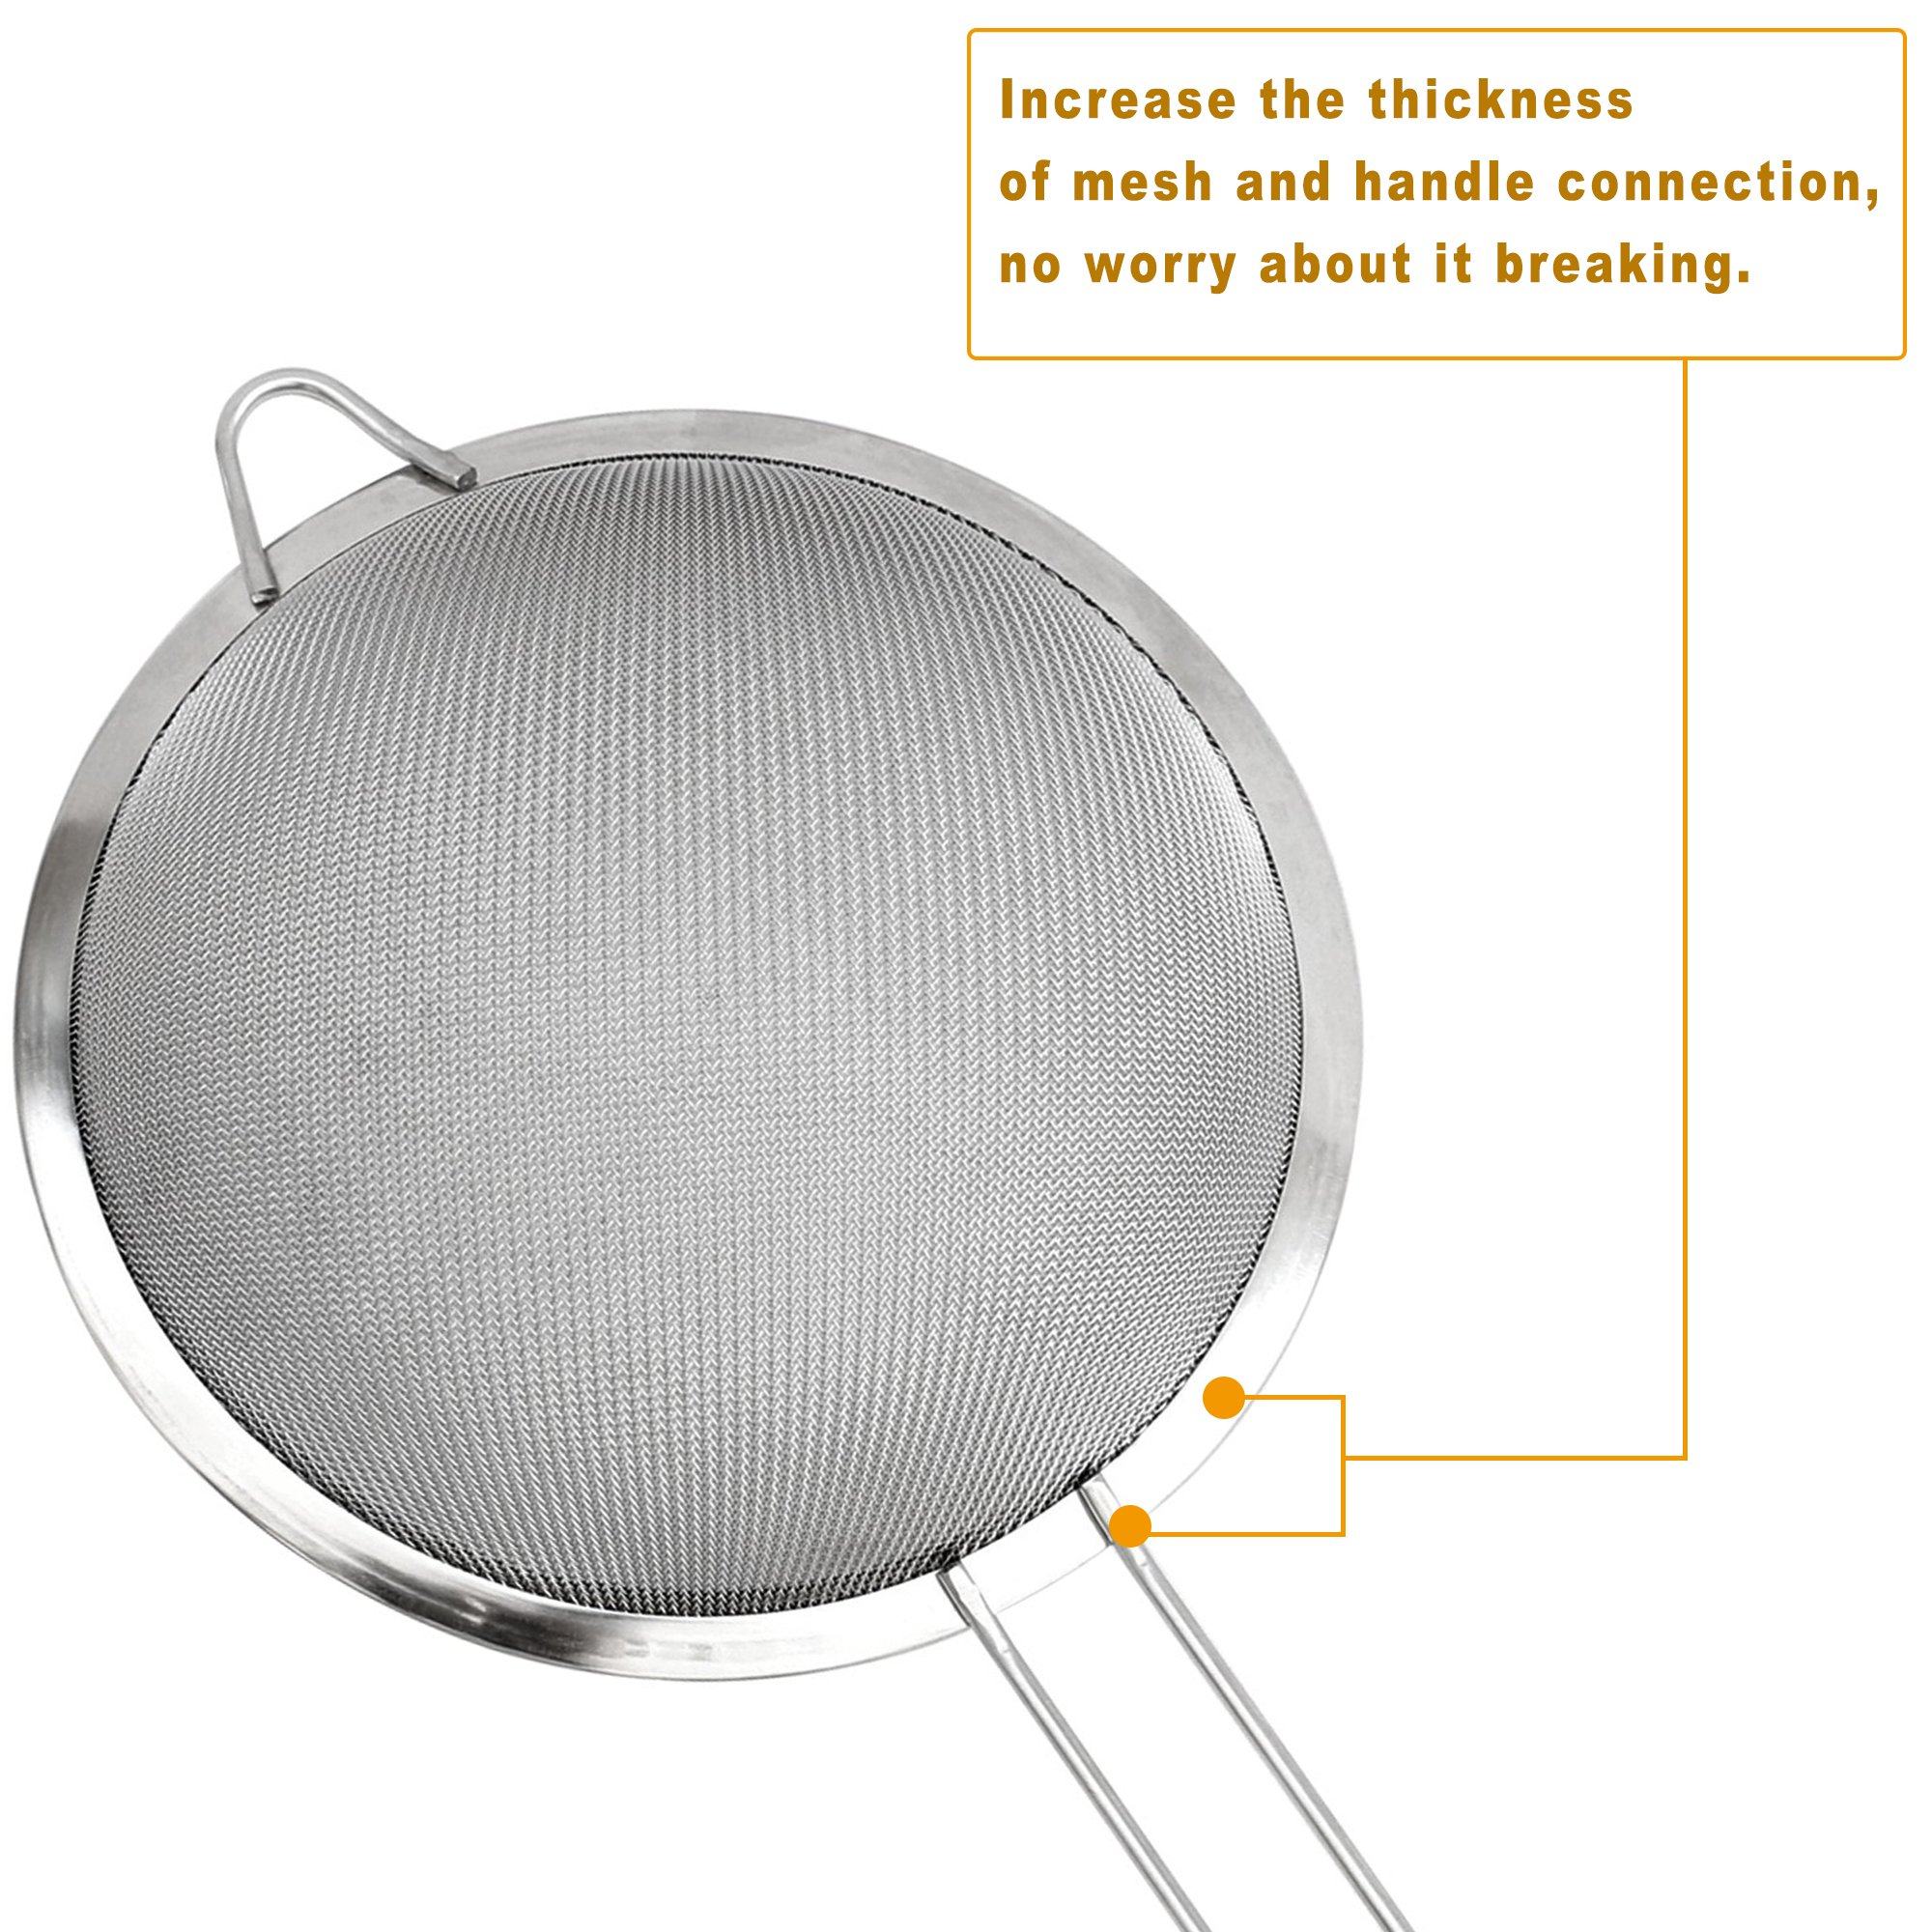 IPOW IP01115 Stainless Steel Fine Tea Mesh Strainer Colander Sieve with Handle for Kitchen Food Rice Vegetable, Set of 3 by IPOW (Image #4)